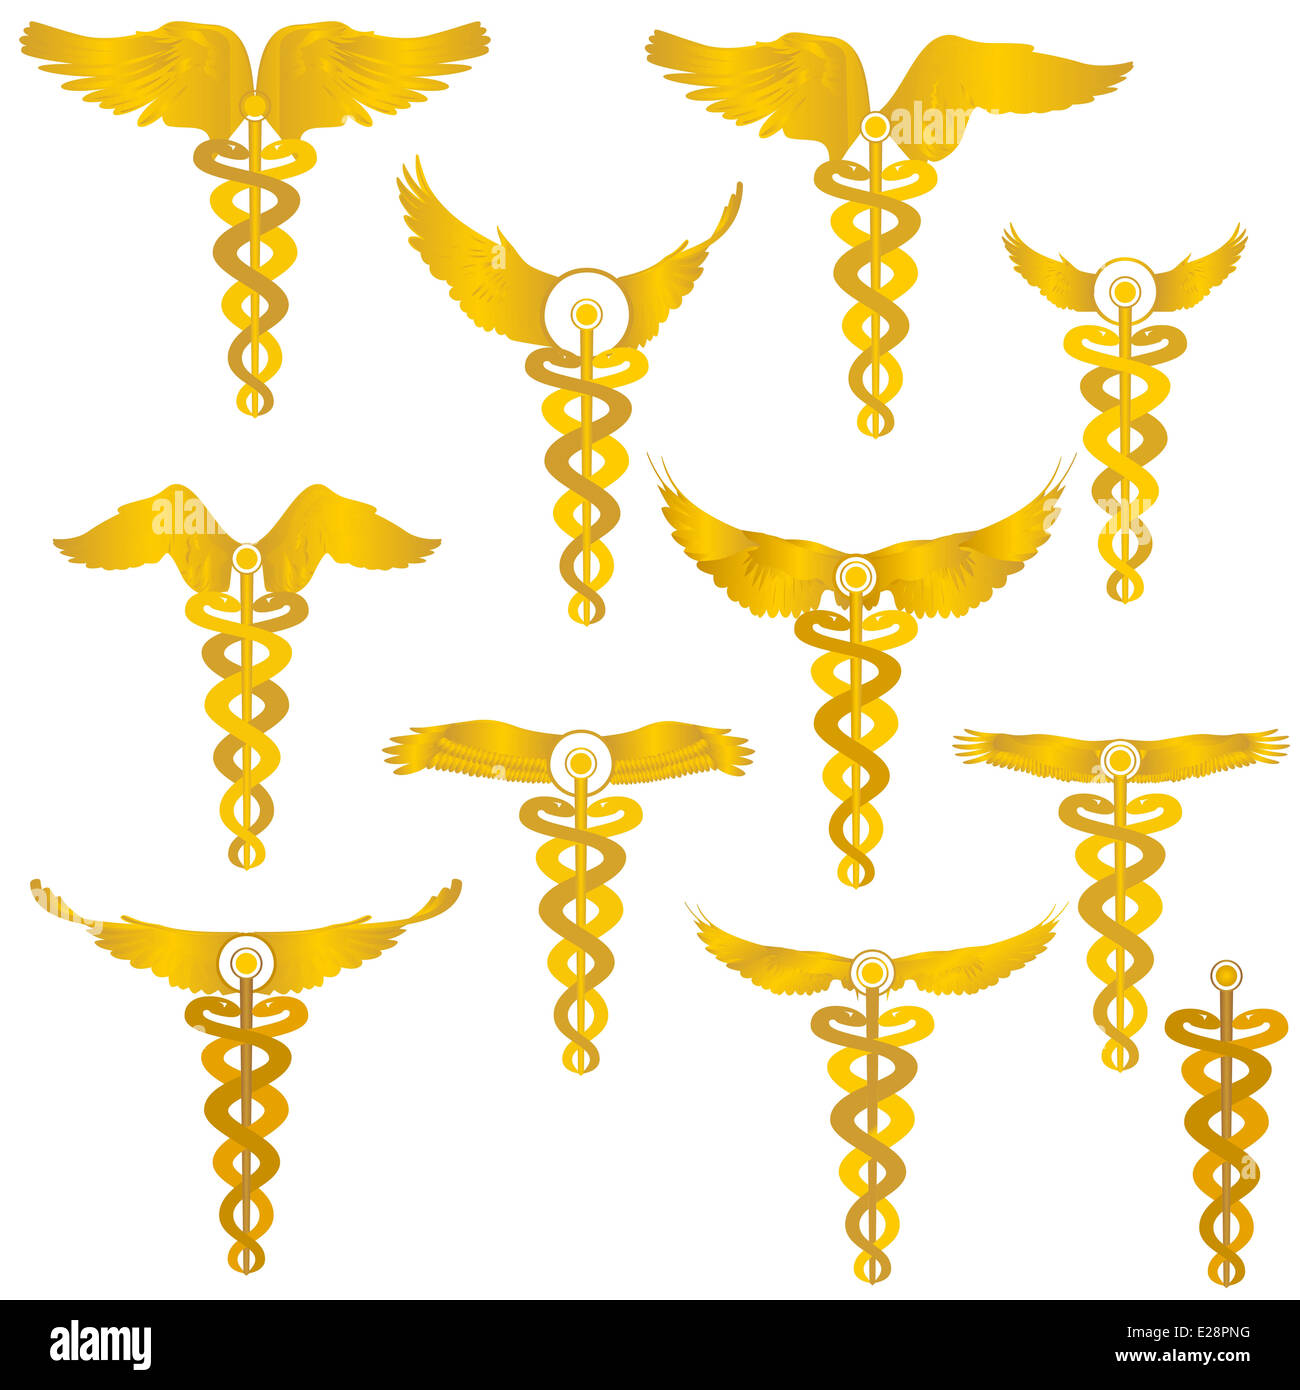 Medical Symbol Wand With Wings Which Wound Two Snakes Illustration On White Background